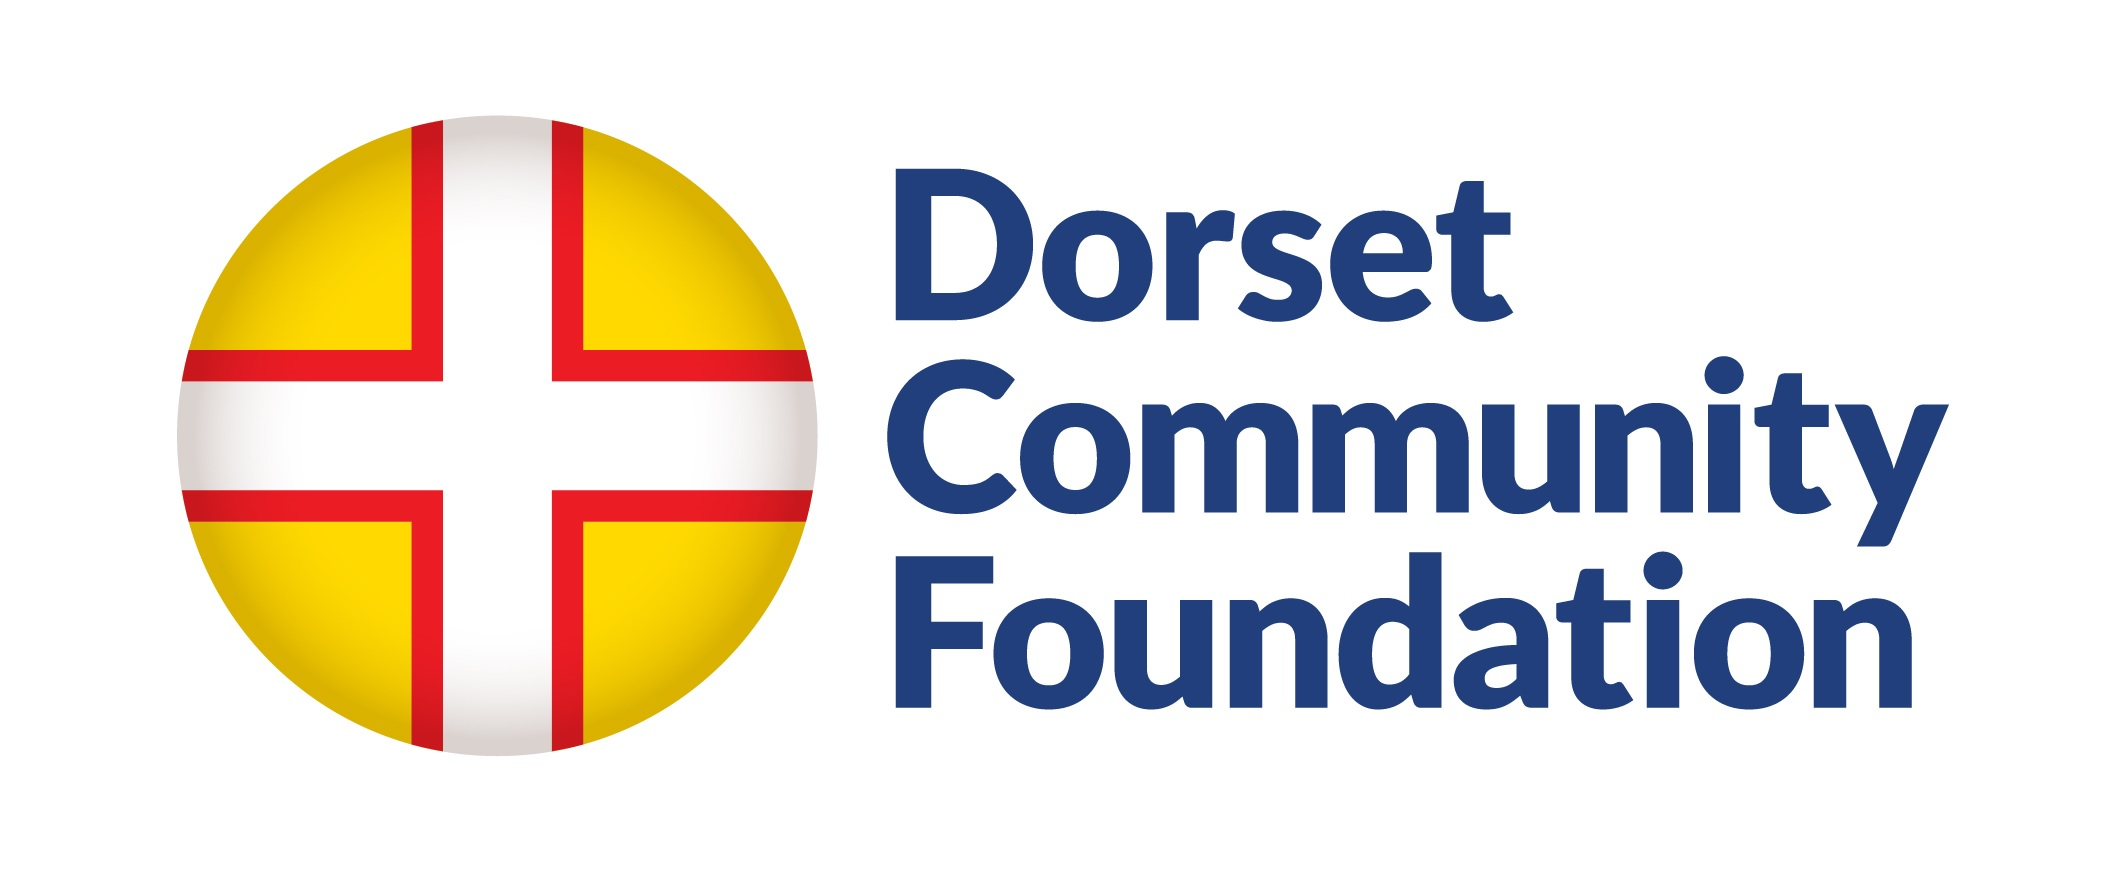 Logo: Dorset Community Foundation (text with circular flag of yellow background and white cross with red outline.